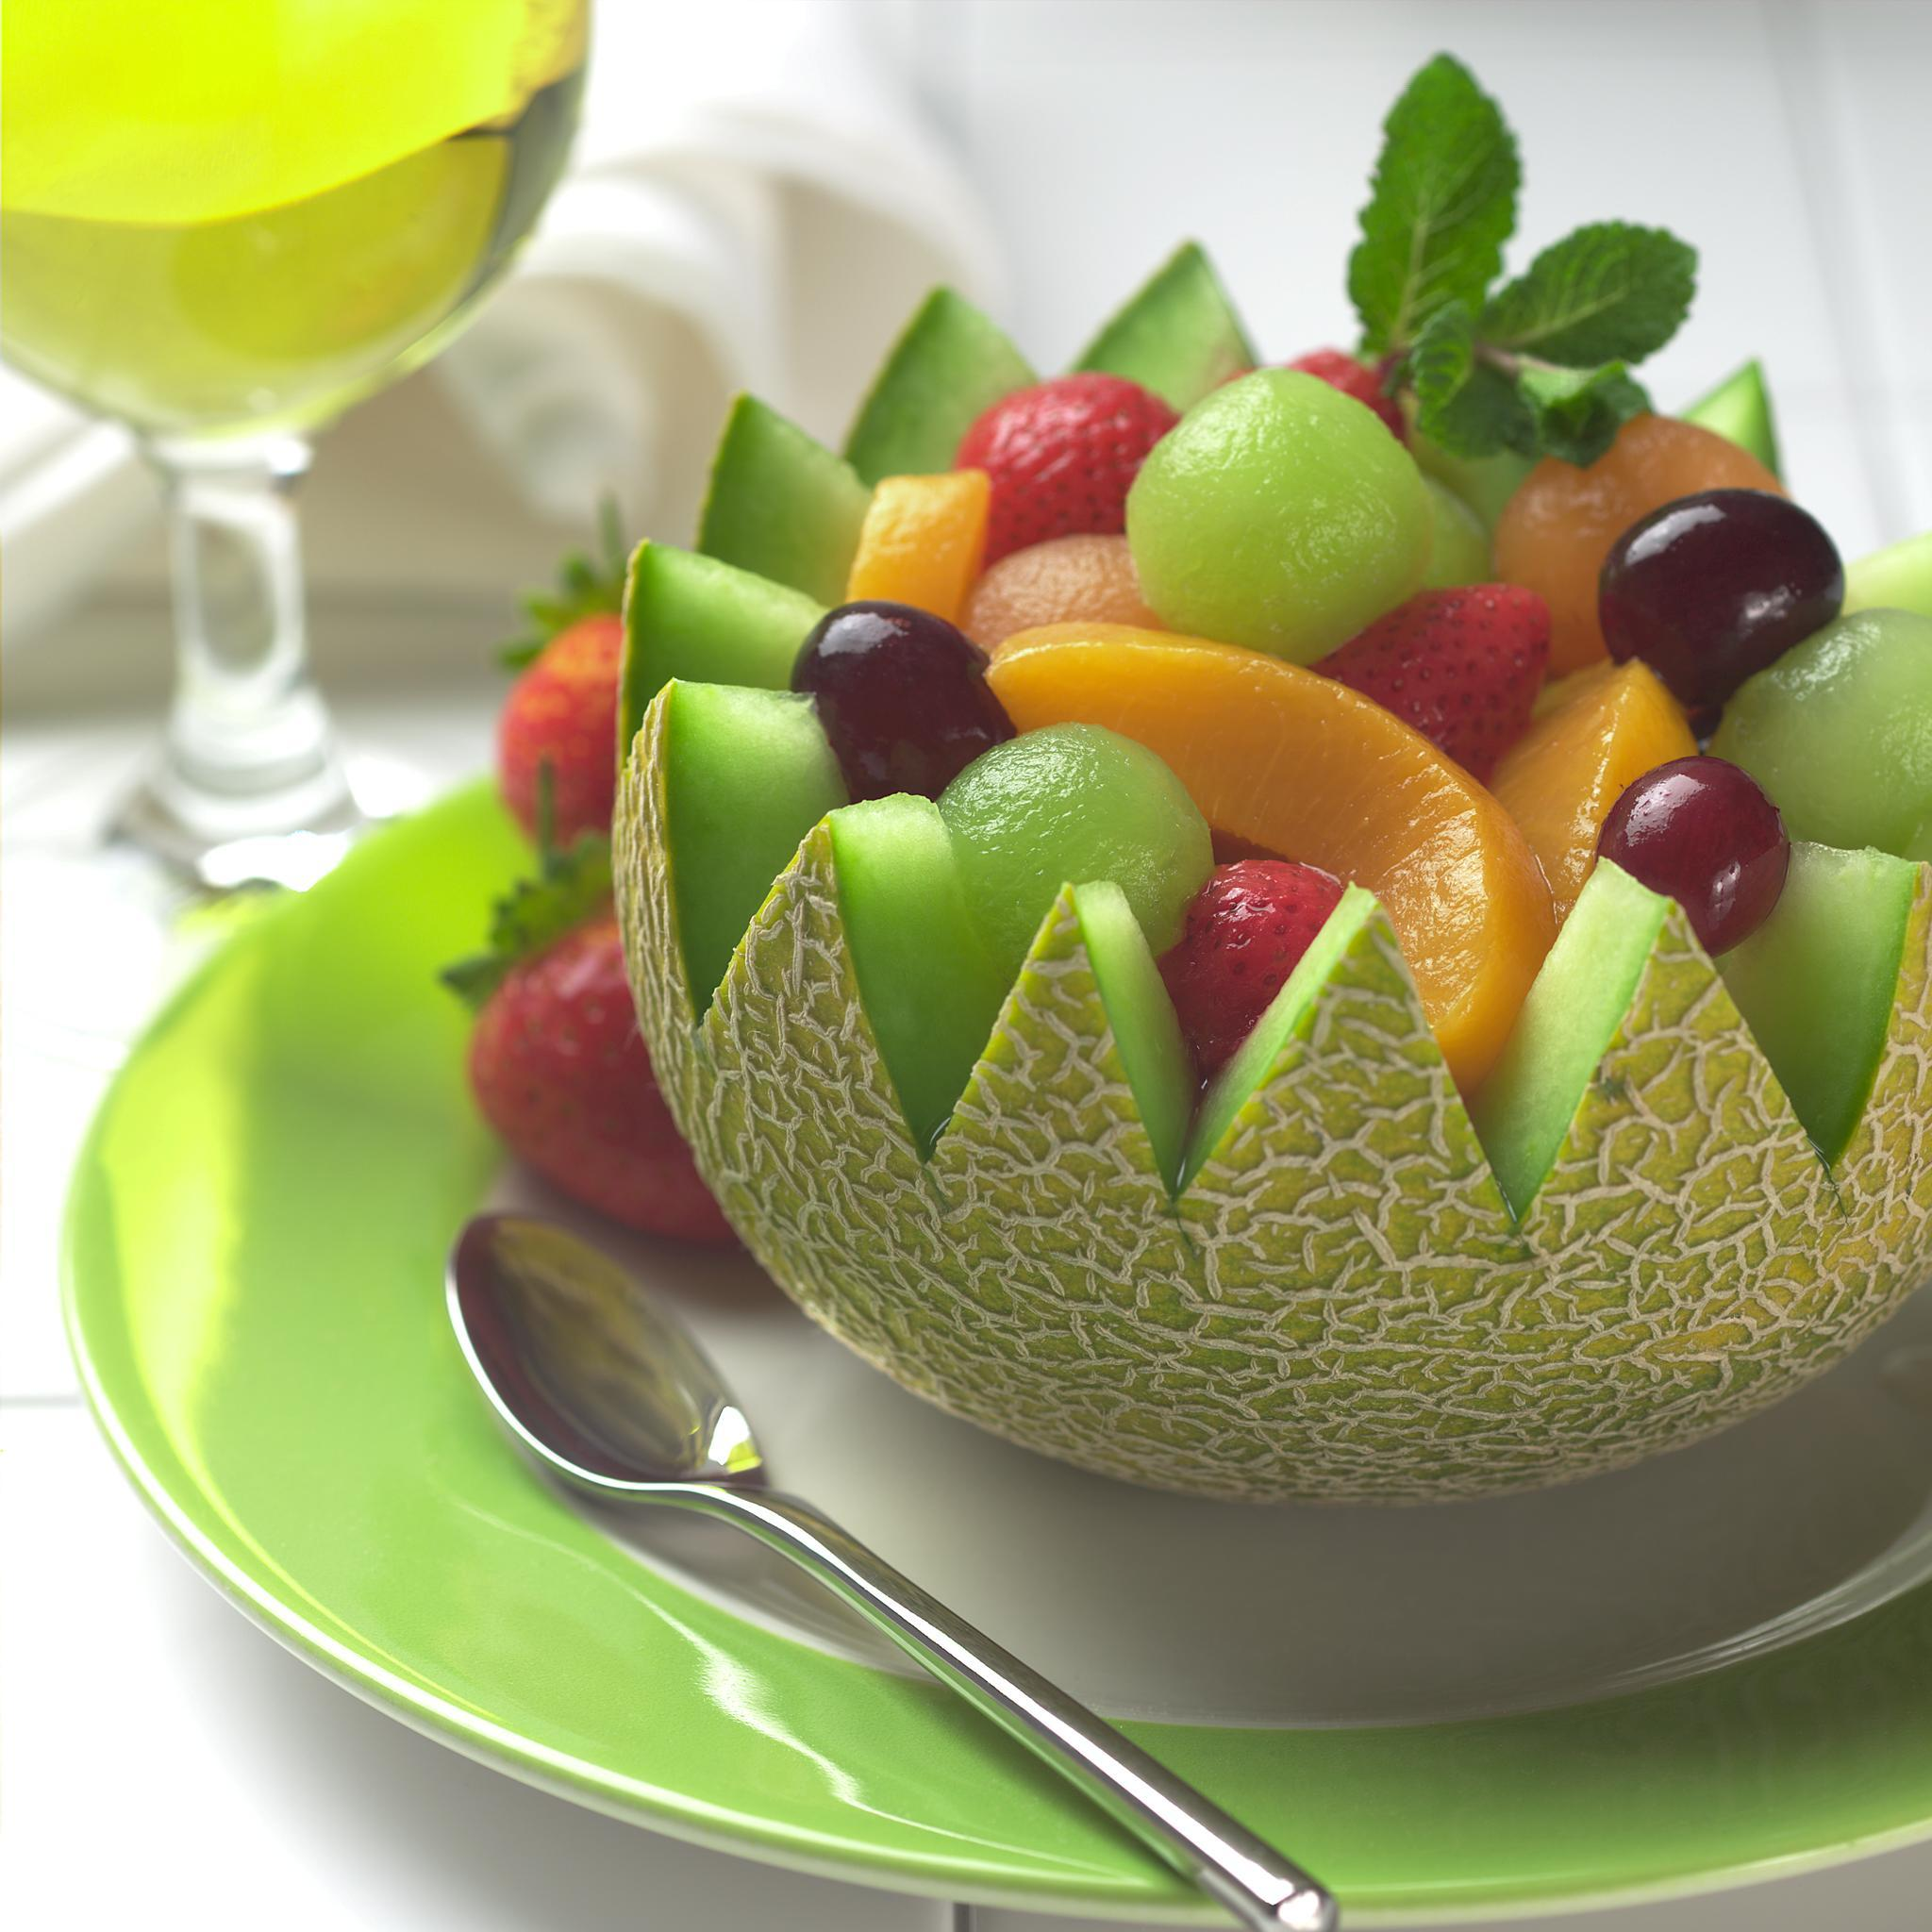 Fruit Salad Fruit Salad Designs